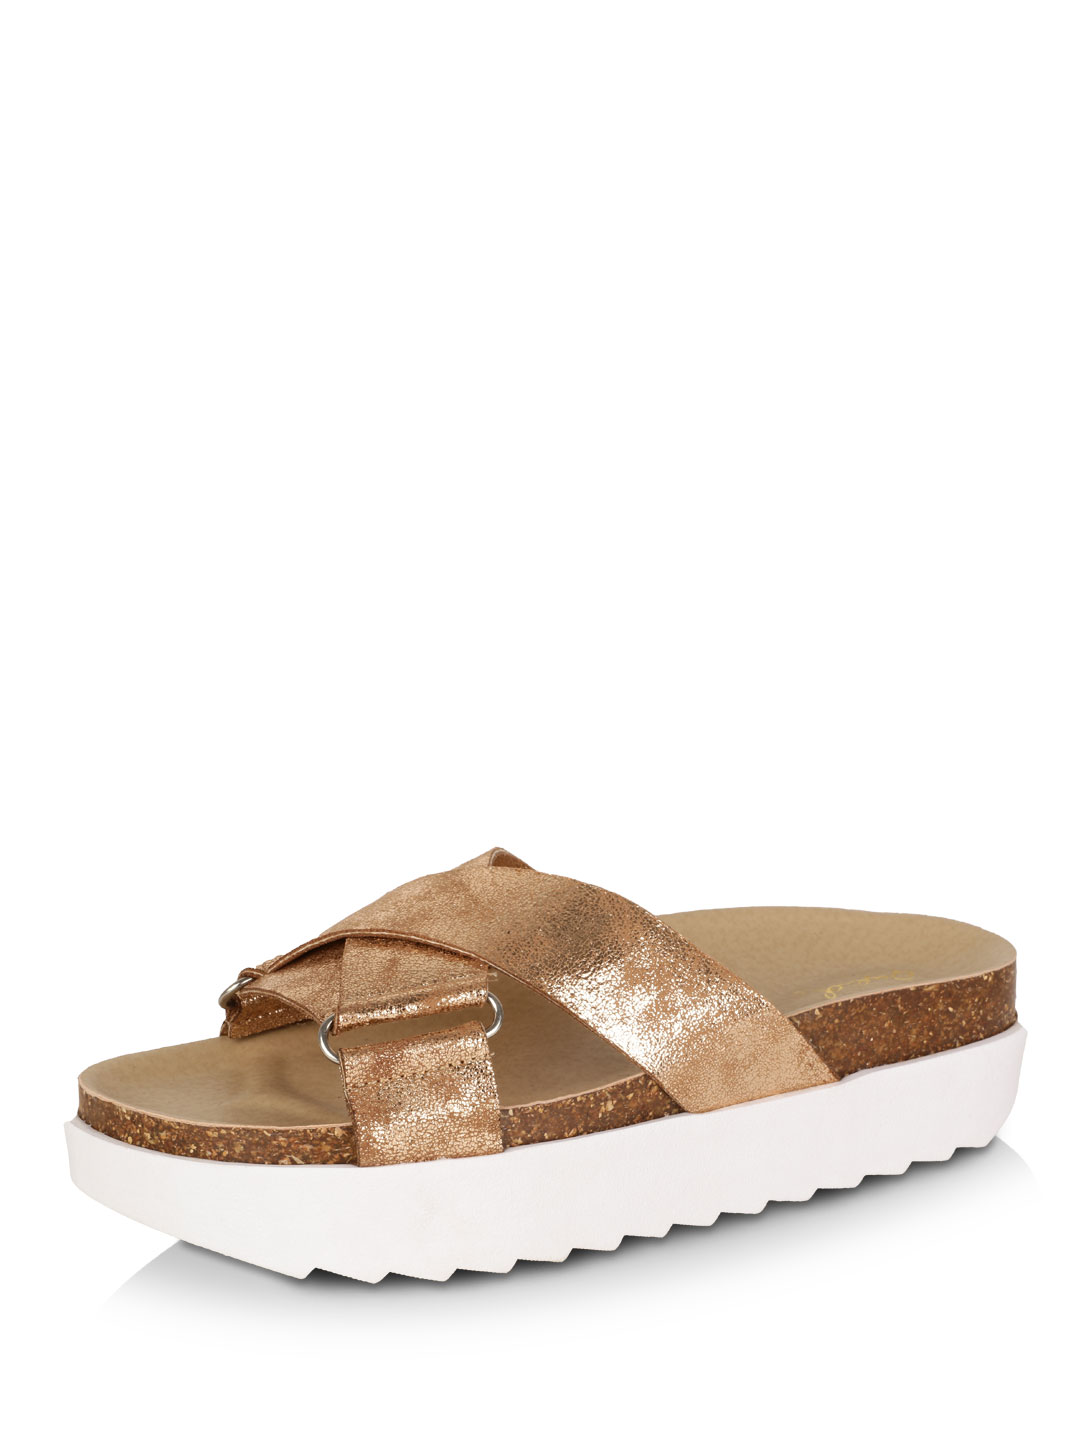 Qupid Gold Stacked Sole Pool Sliders 1